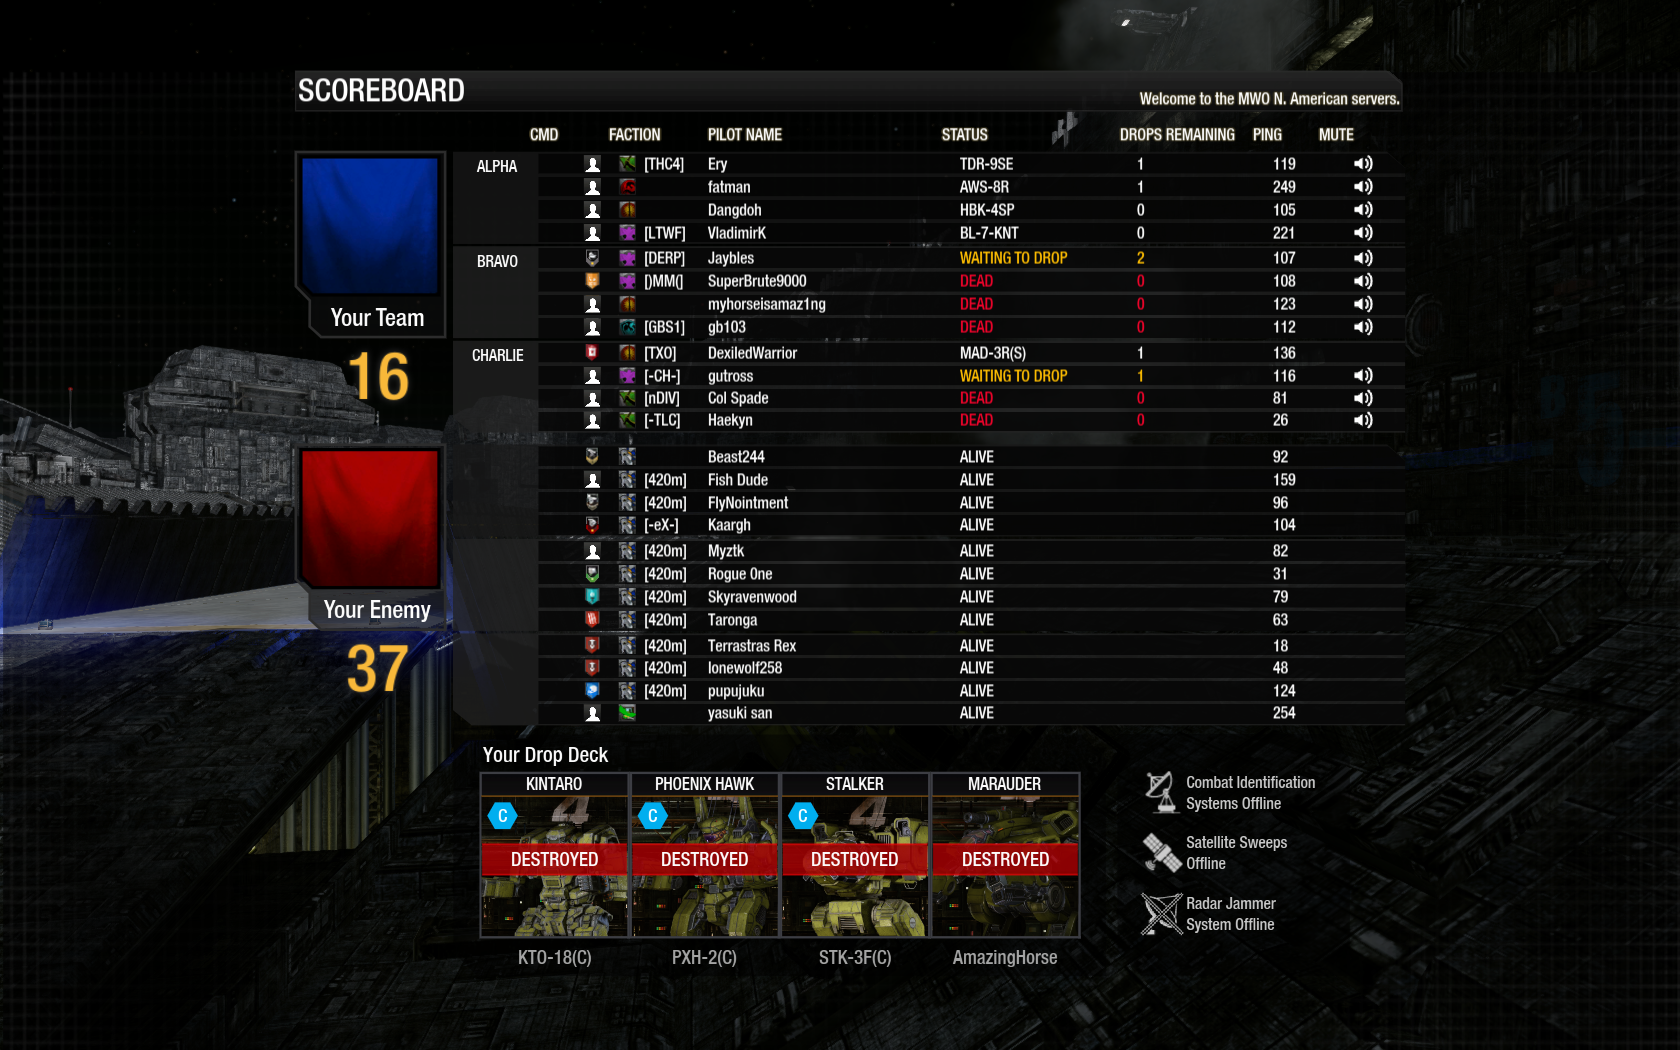 mwo cw matchmaking In cw you can build a  but the matchmaking just means everything is an  thats honestly the only real draw for me in cw, since i'm not really invested in the mwo .